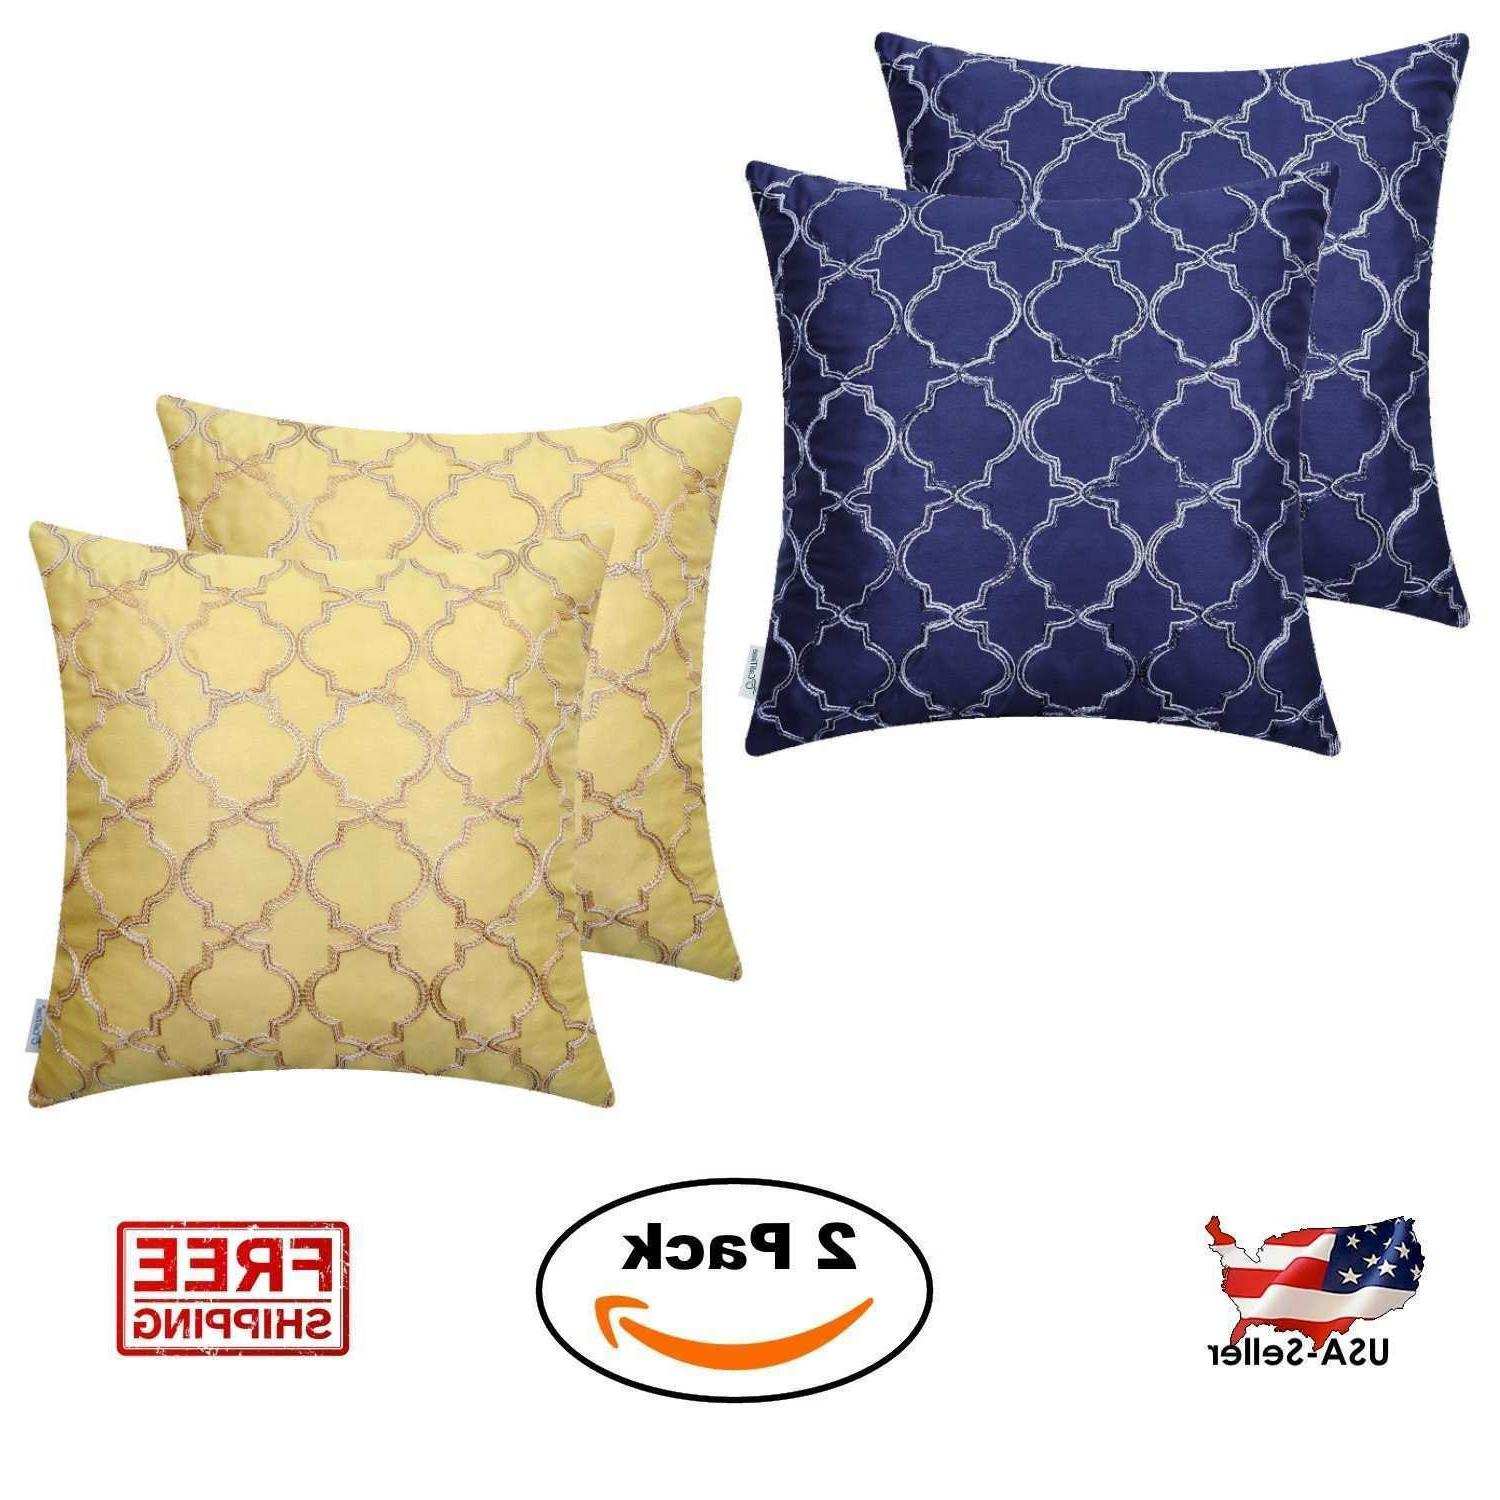 2 pack set 18 x 18 pillow